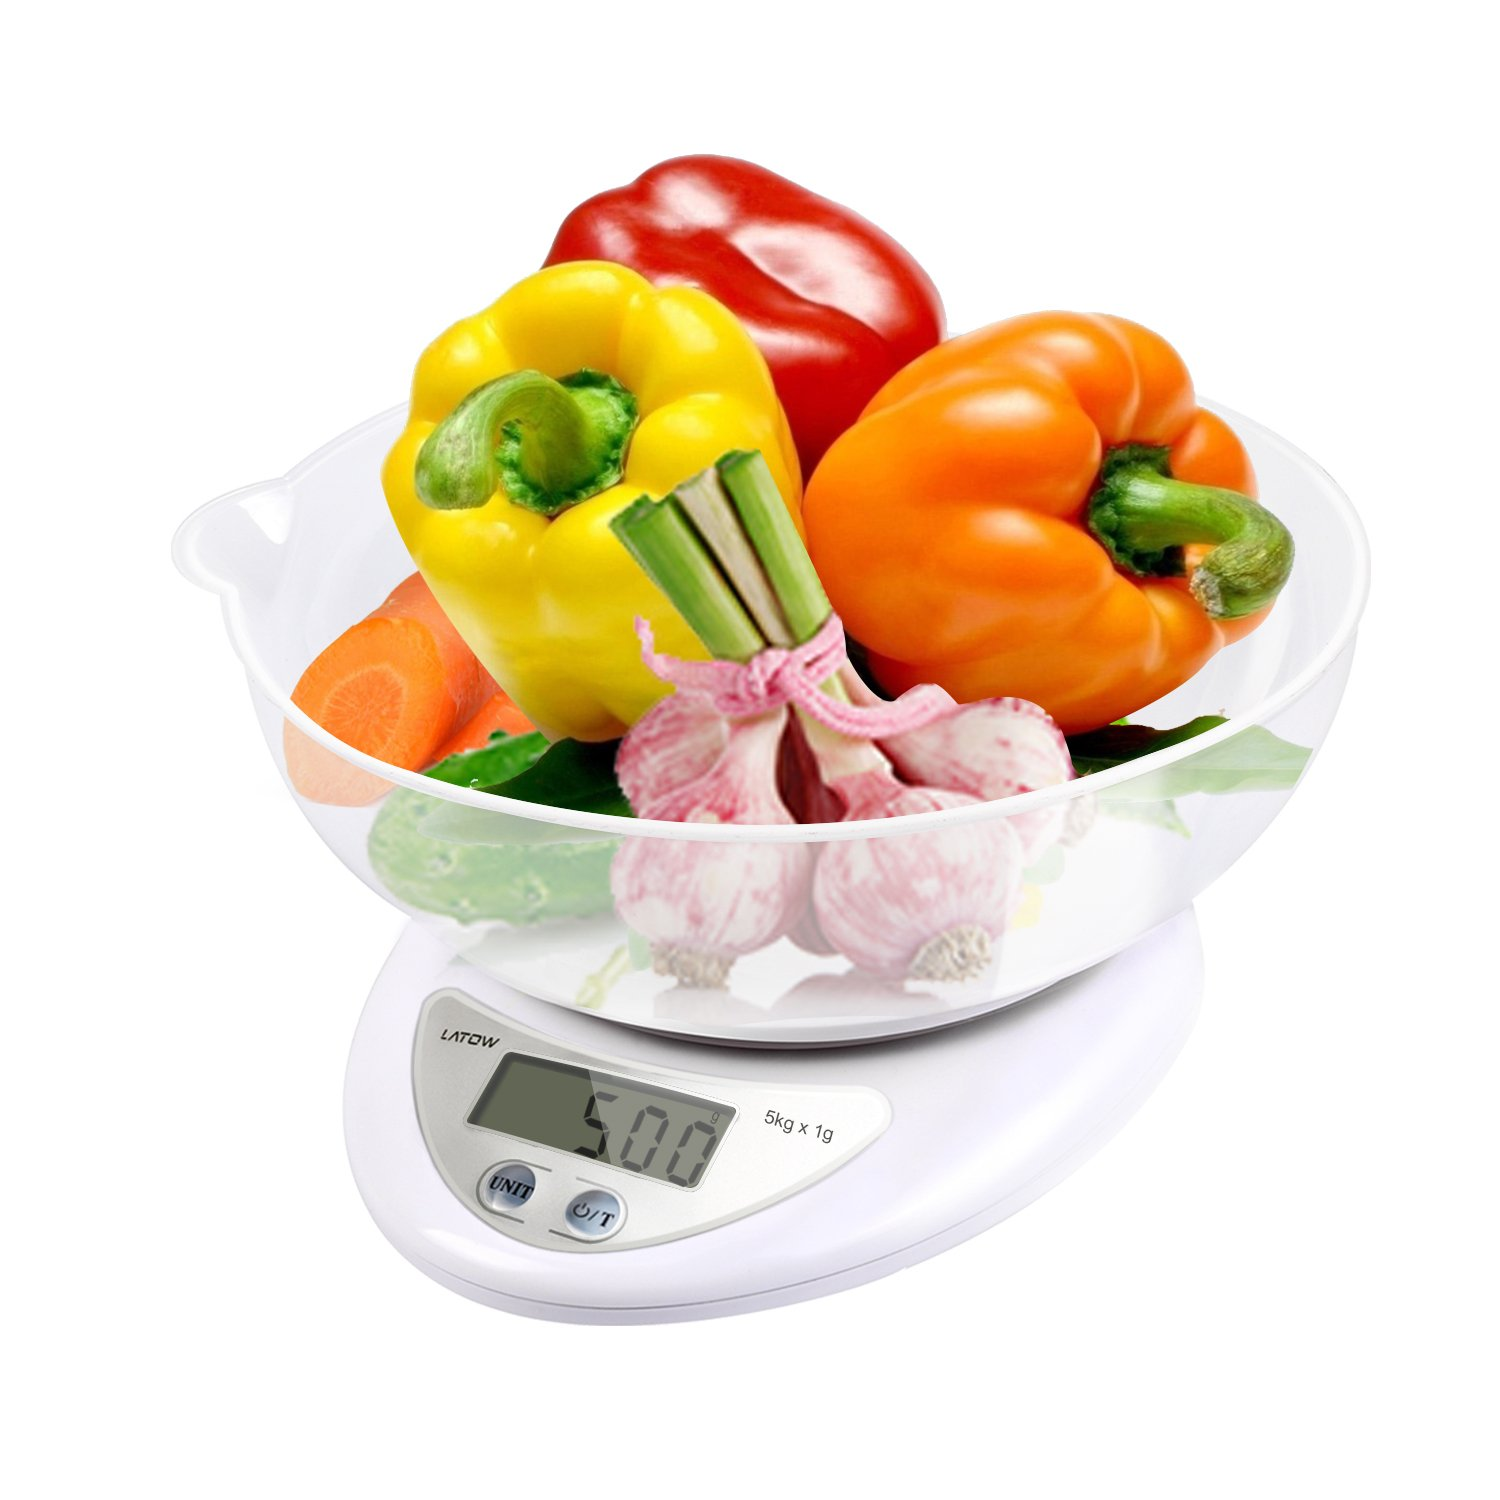 Digital Kitchen Food Scale, LATOW Multifunctional Food Scale with Mixing Bowls for Food Cooking Diet Baking Liquid Scale High Accuracy Food Weight Scale Tare Auto Off Function(Battery Included)